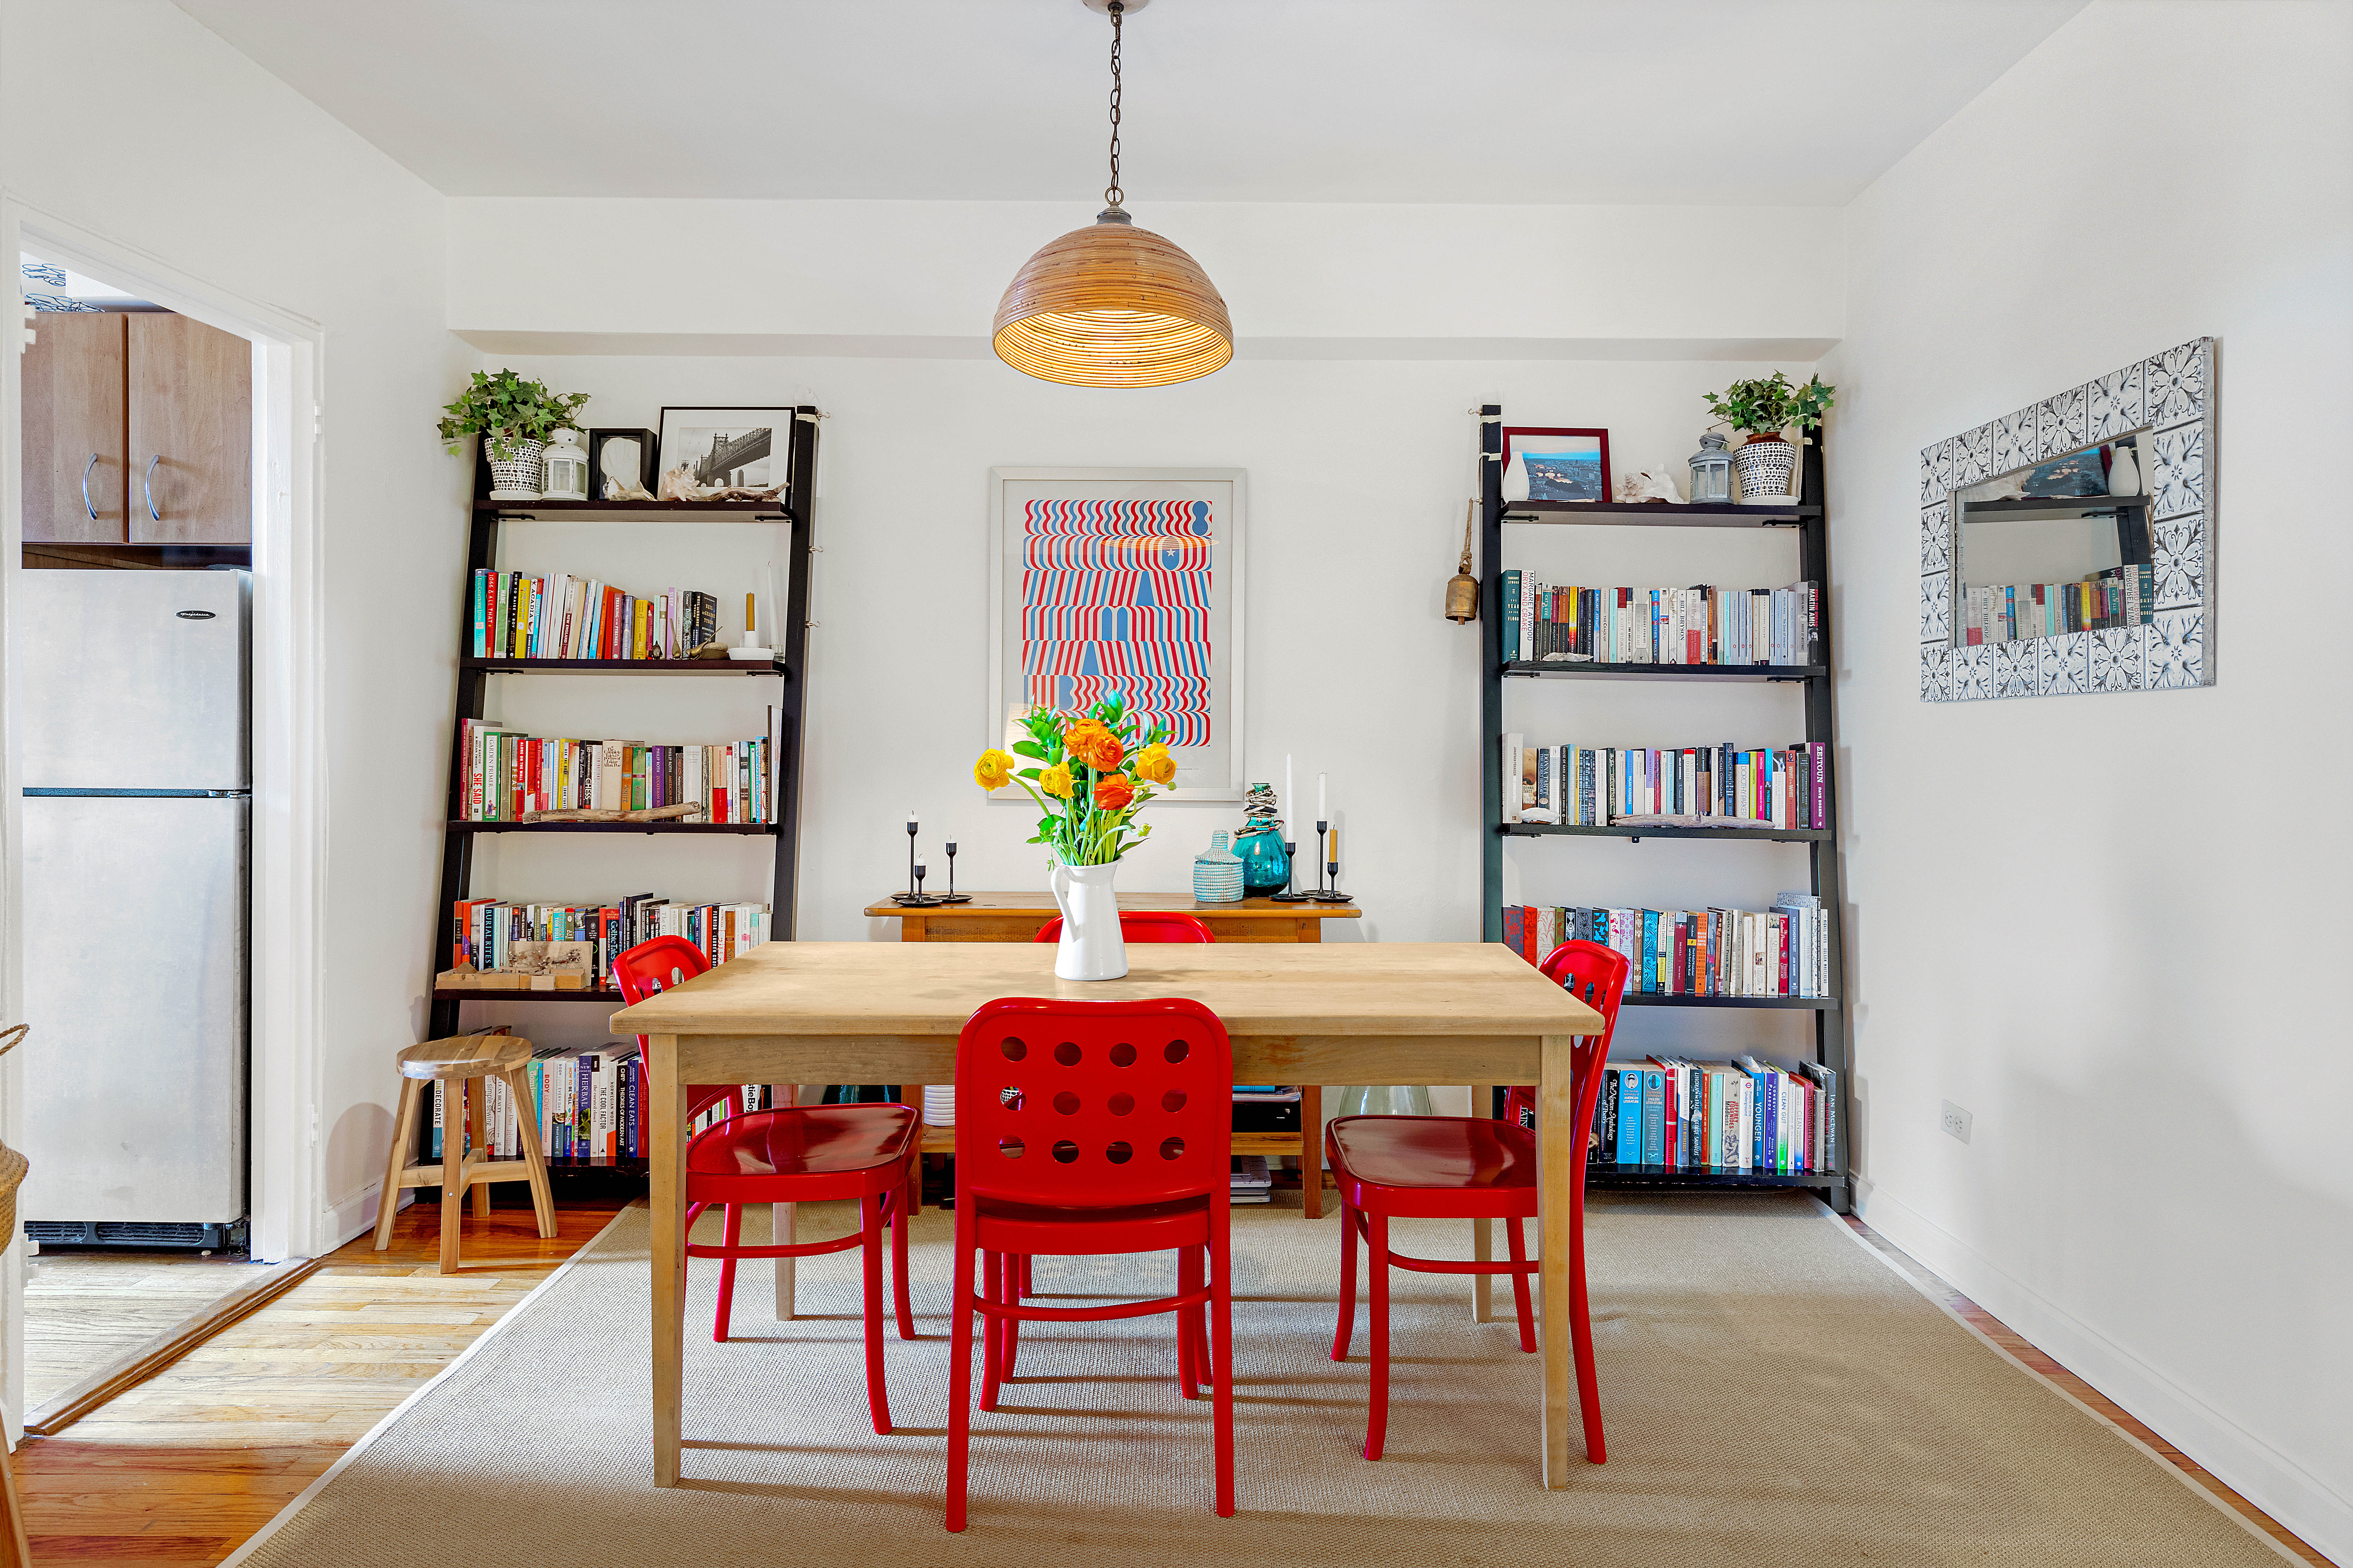 A dining area with a wooden table, four red chairs, two bookshelves, and a light brown rug.